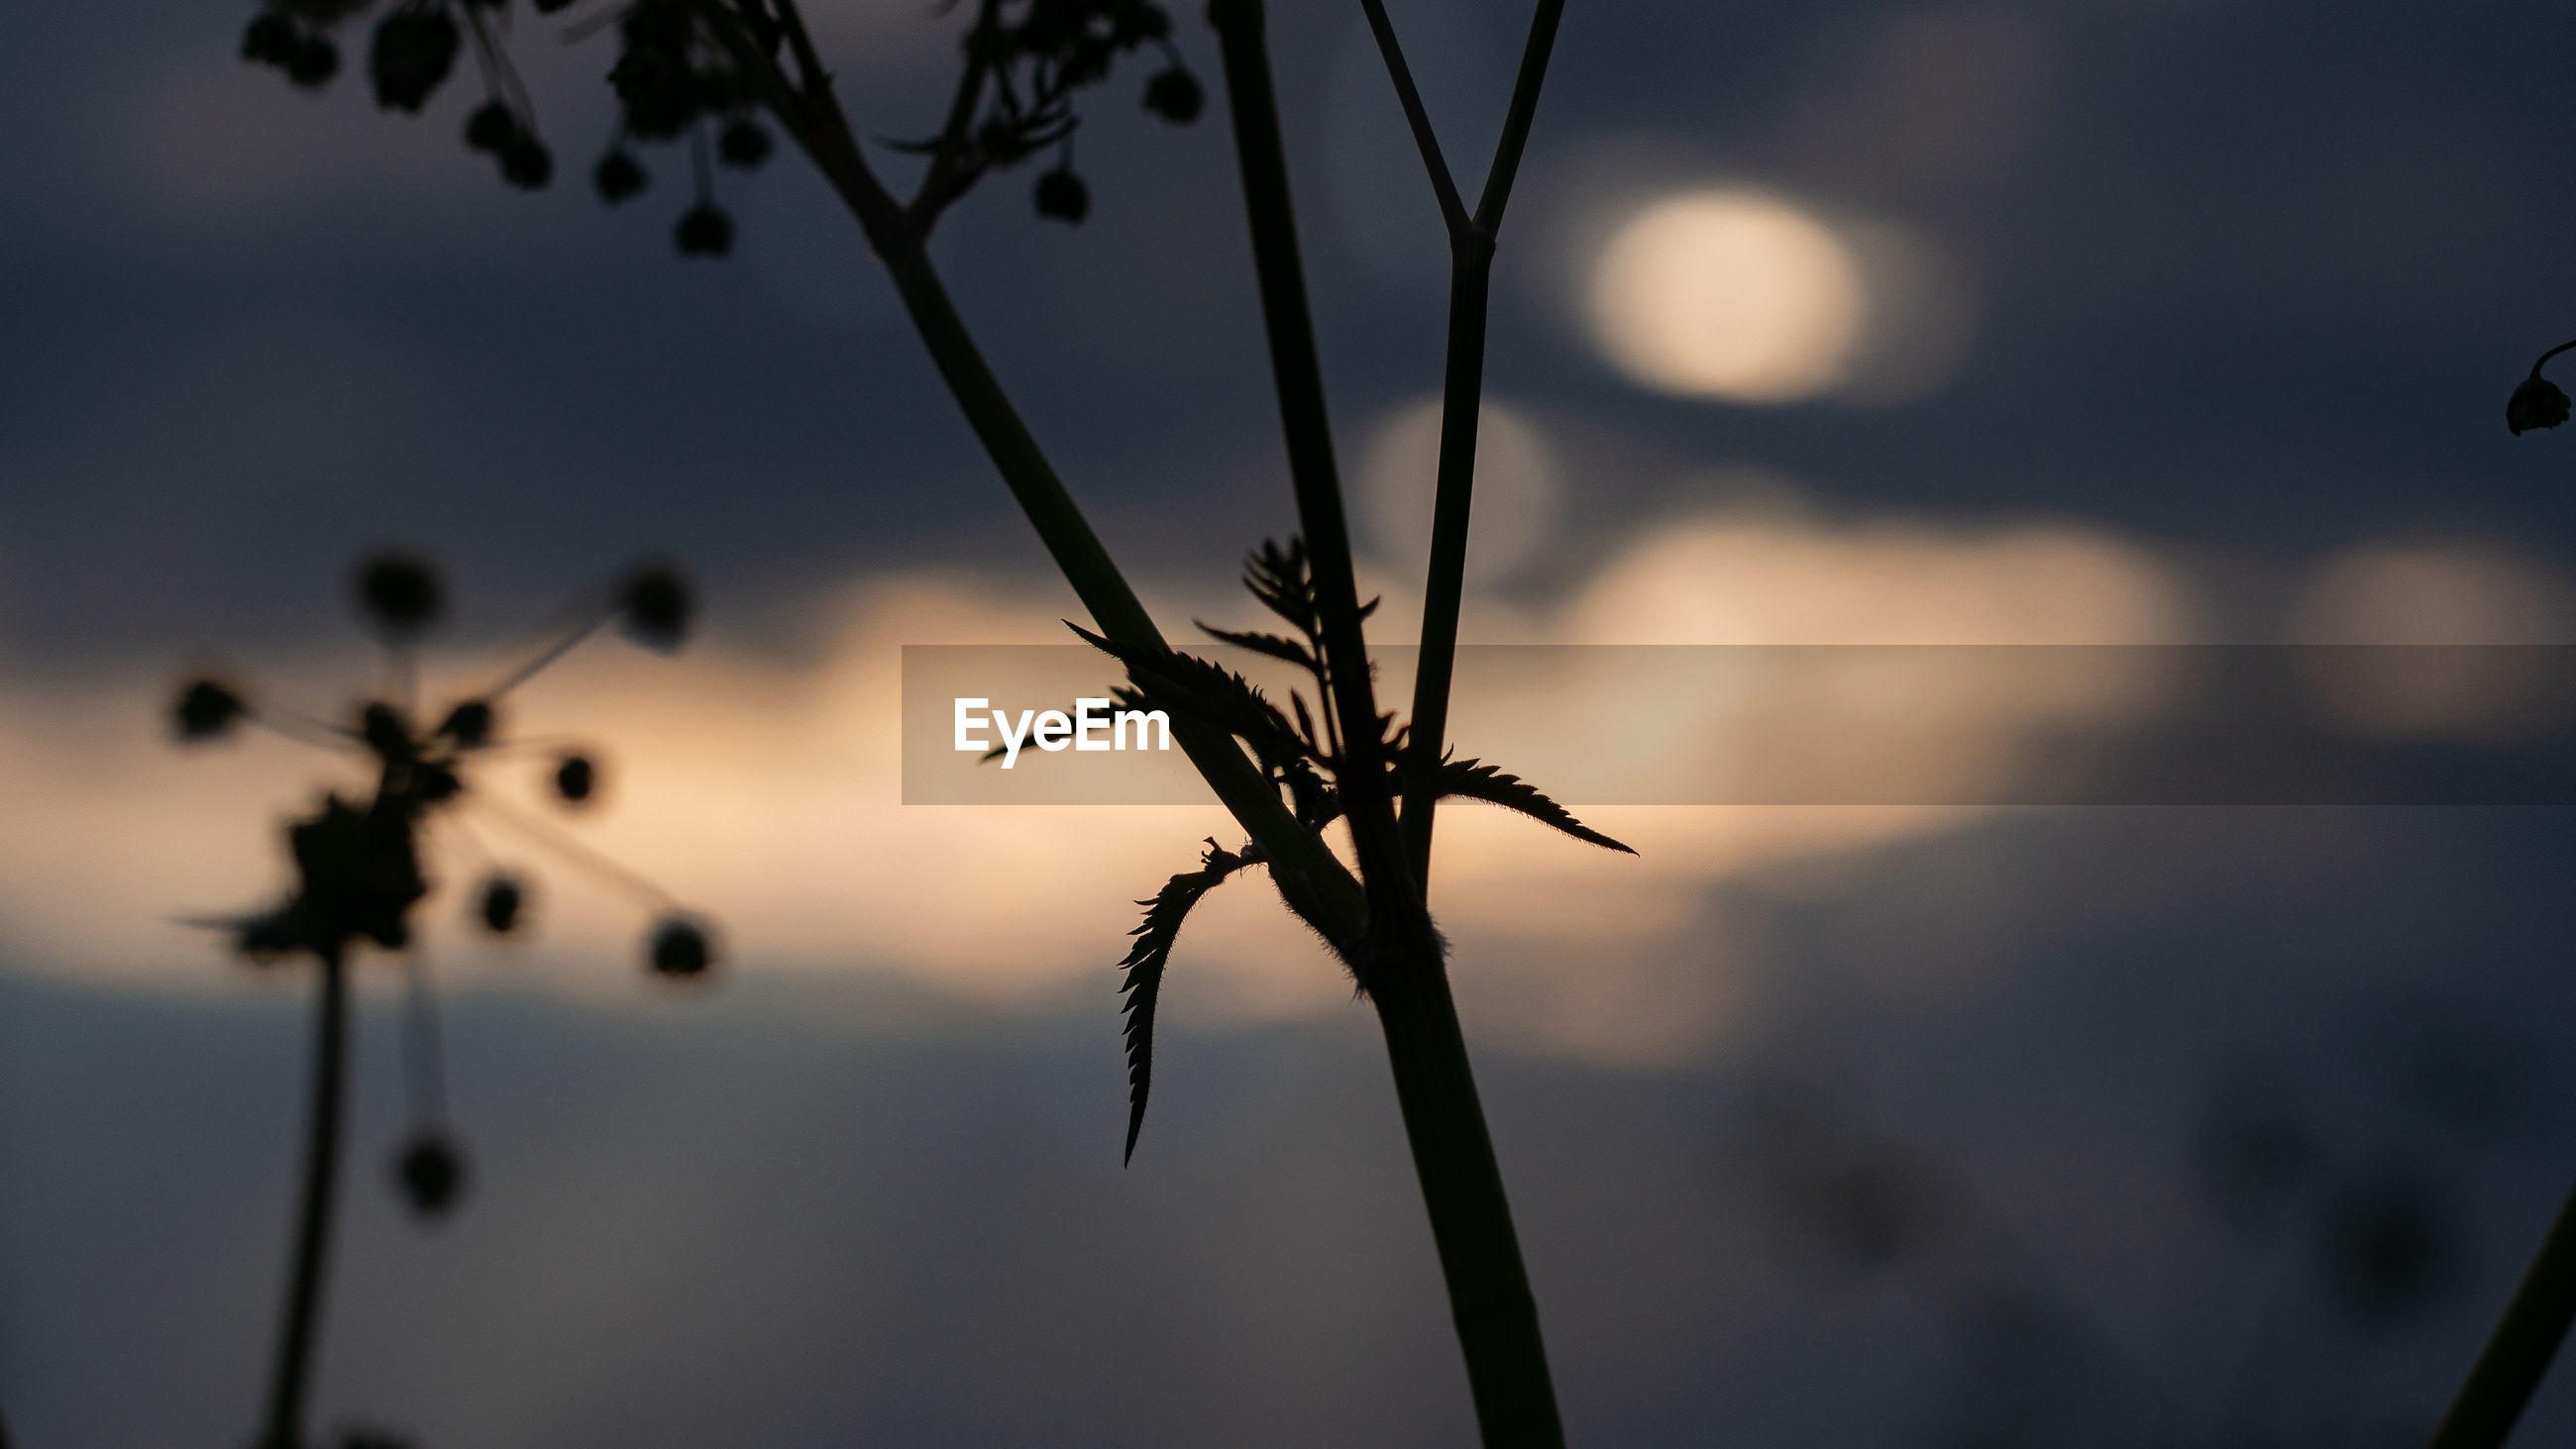 CLOSE-UP OF DRY PLANT AGAINST SKY AT SUNSET